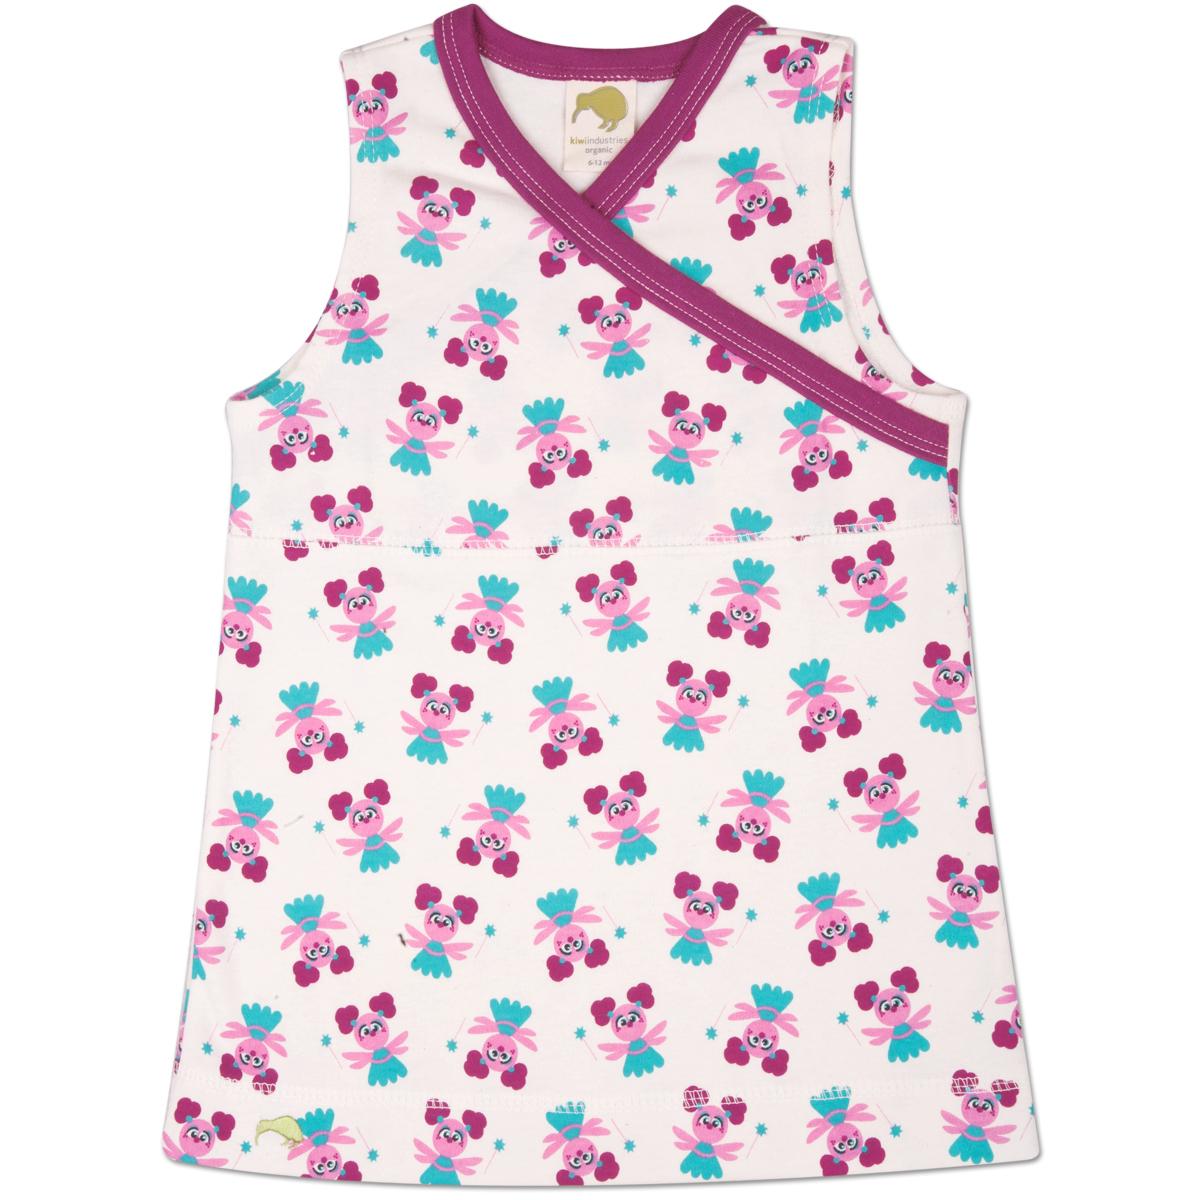 Abby Pattern Infant Jumper Dress